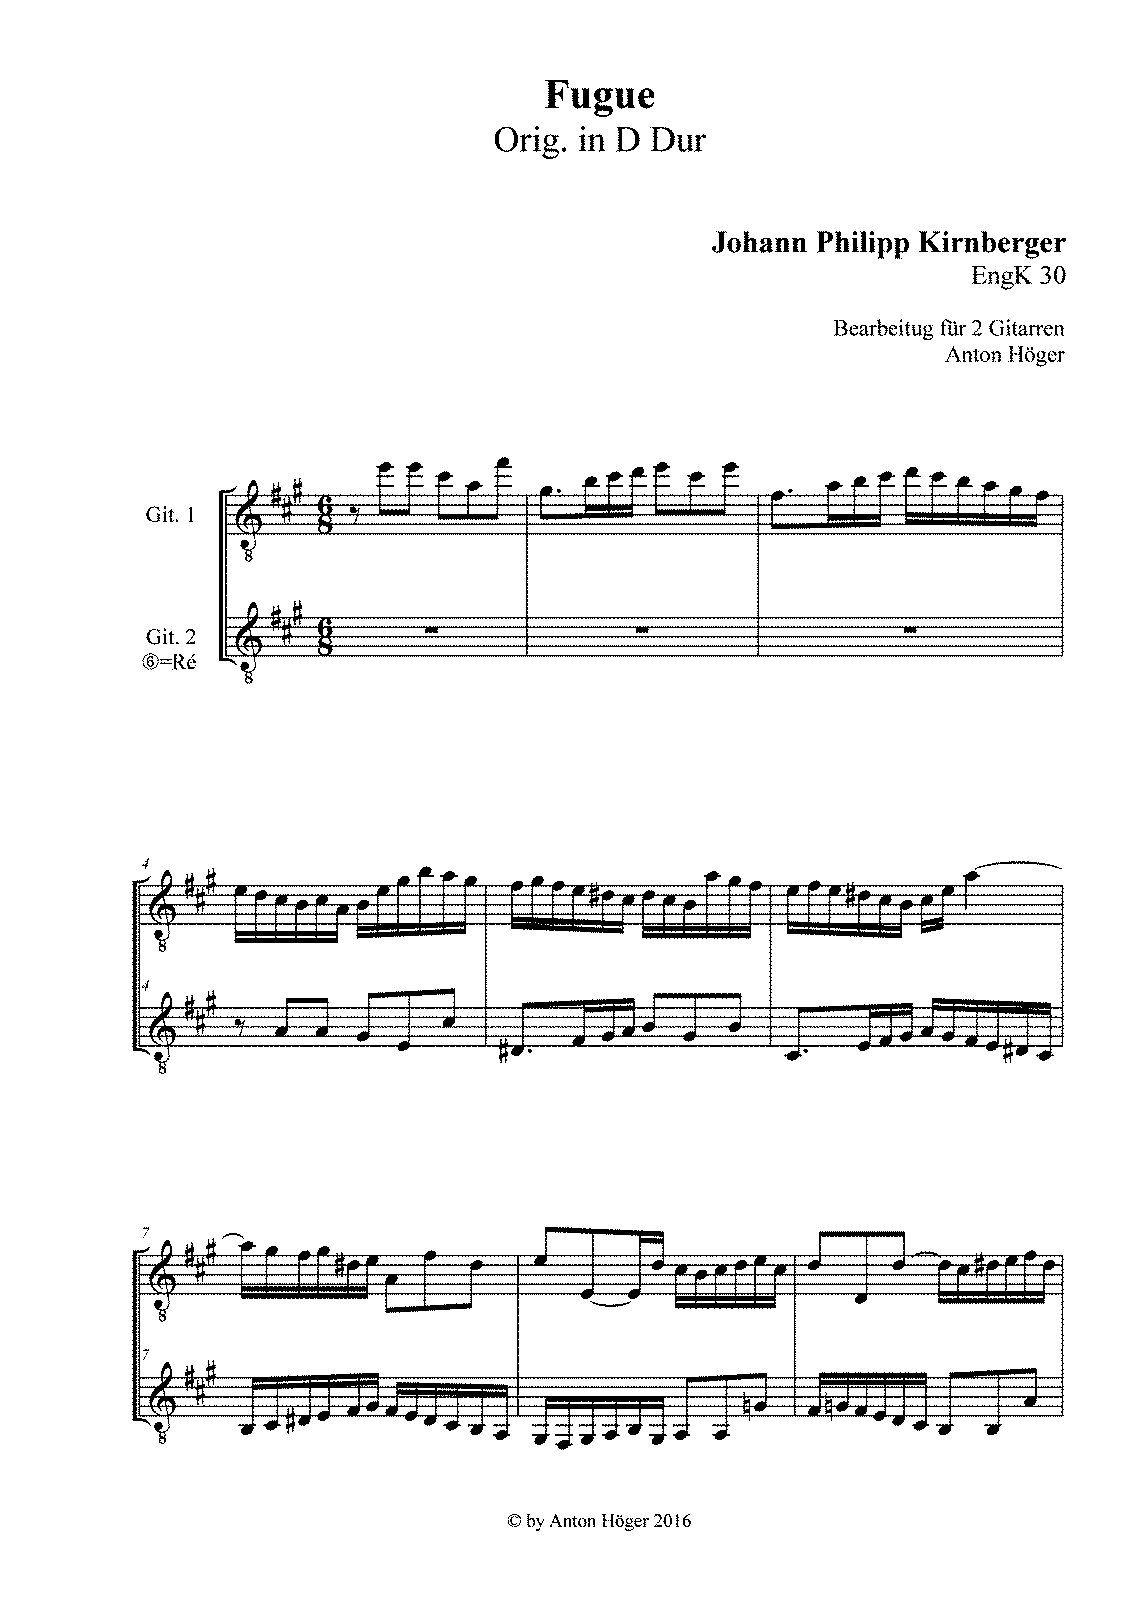 PMLP633318-Kirnberger, Johann Philipp - Fugue in D major, EngK 30-2Git.pdf